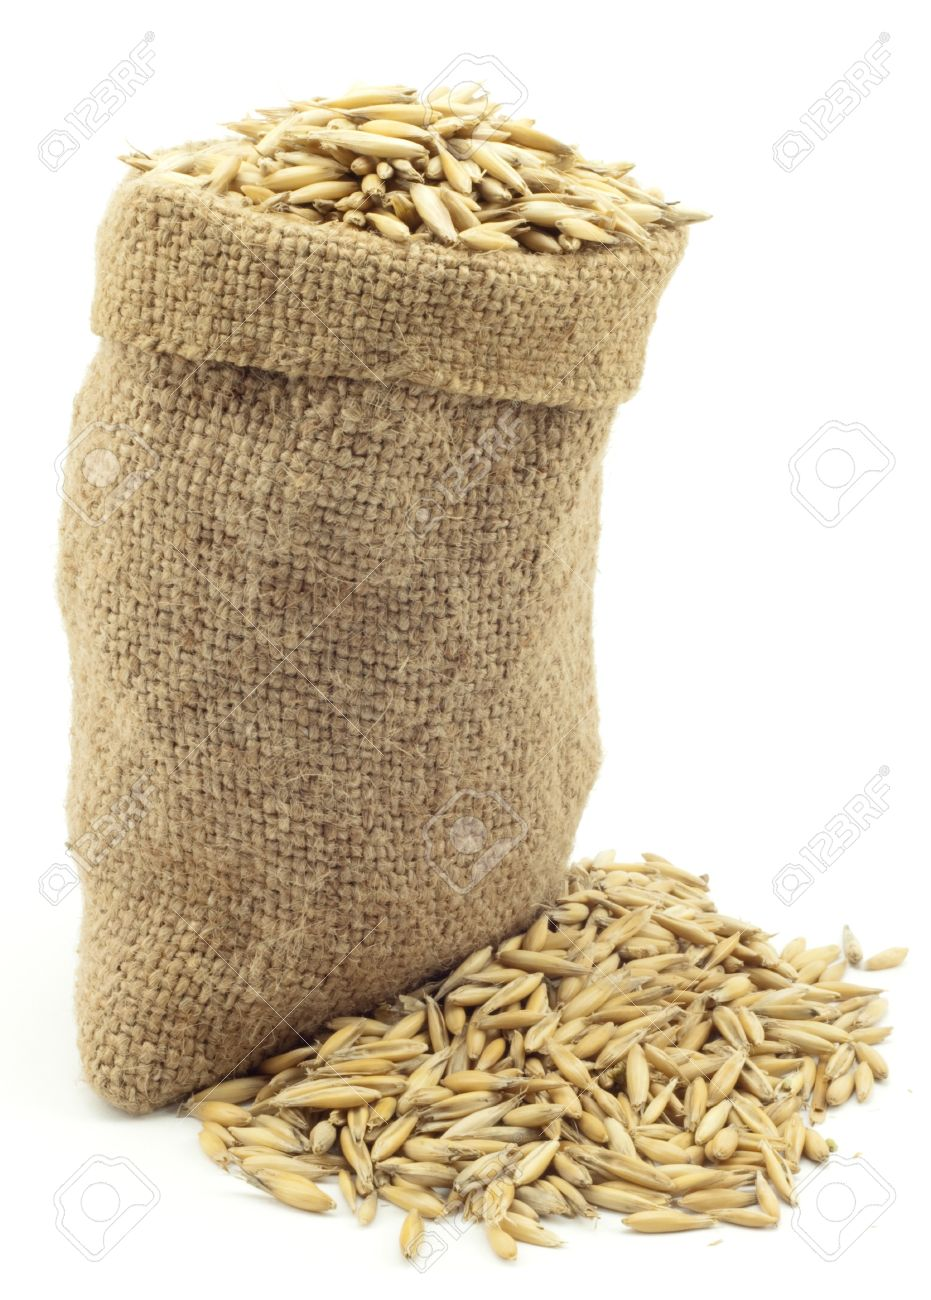 bag of oats on a white background Stock Photo - 7080835